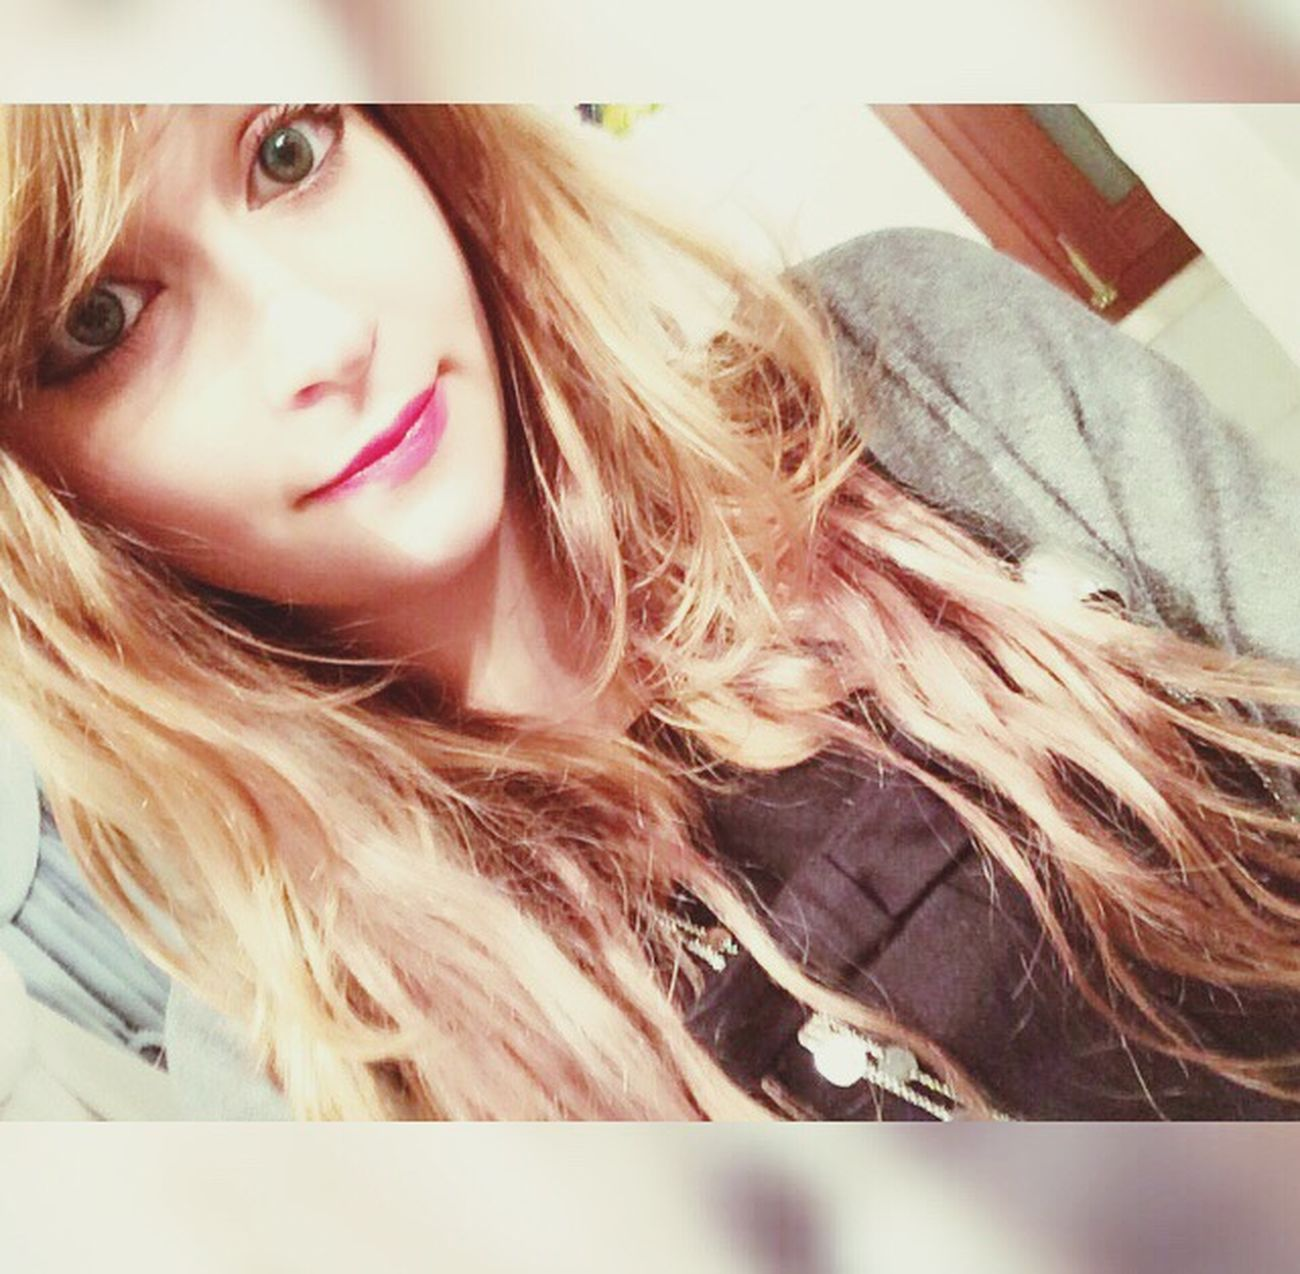 Girl Blonde Greeneyes Follow Me Blonde.Crazy.Stupid.Girl That's Me Getting Bored Yeah Eyes Stupid Face